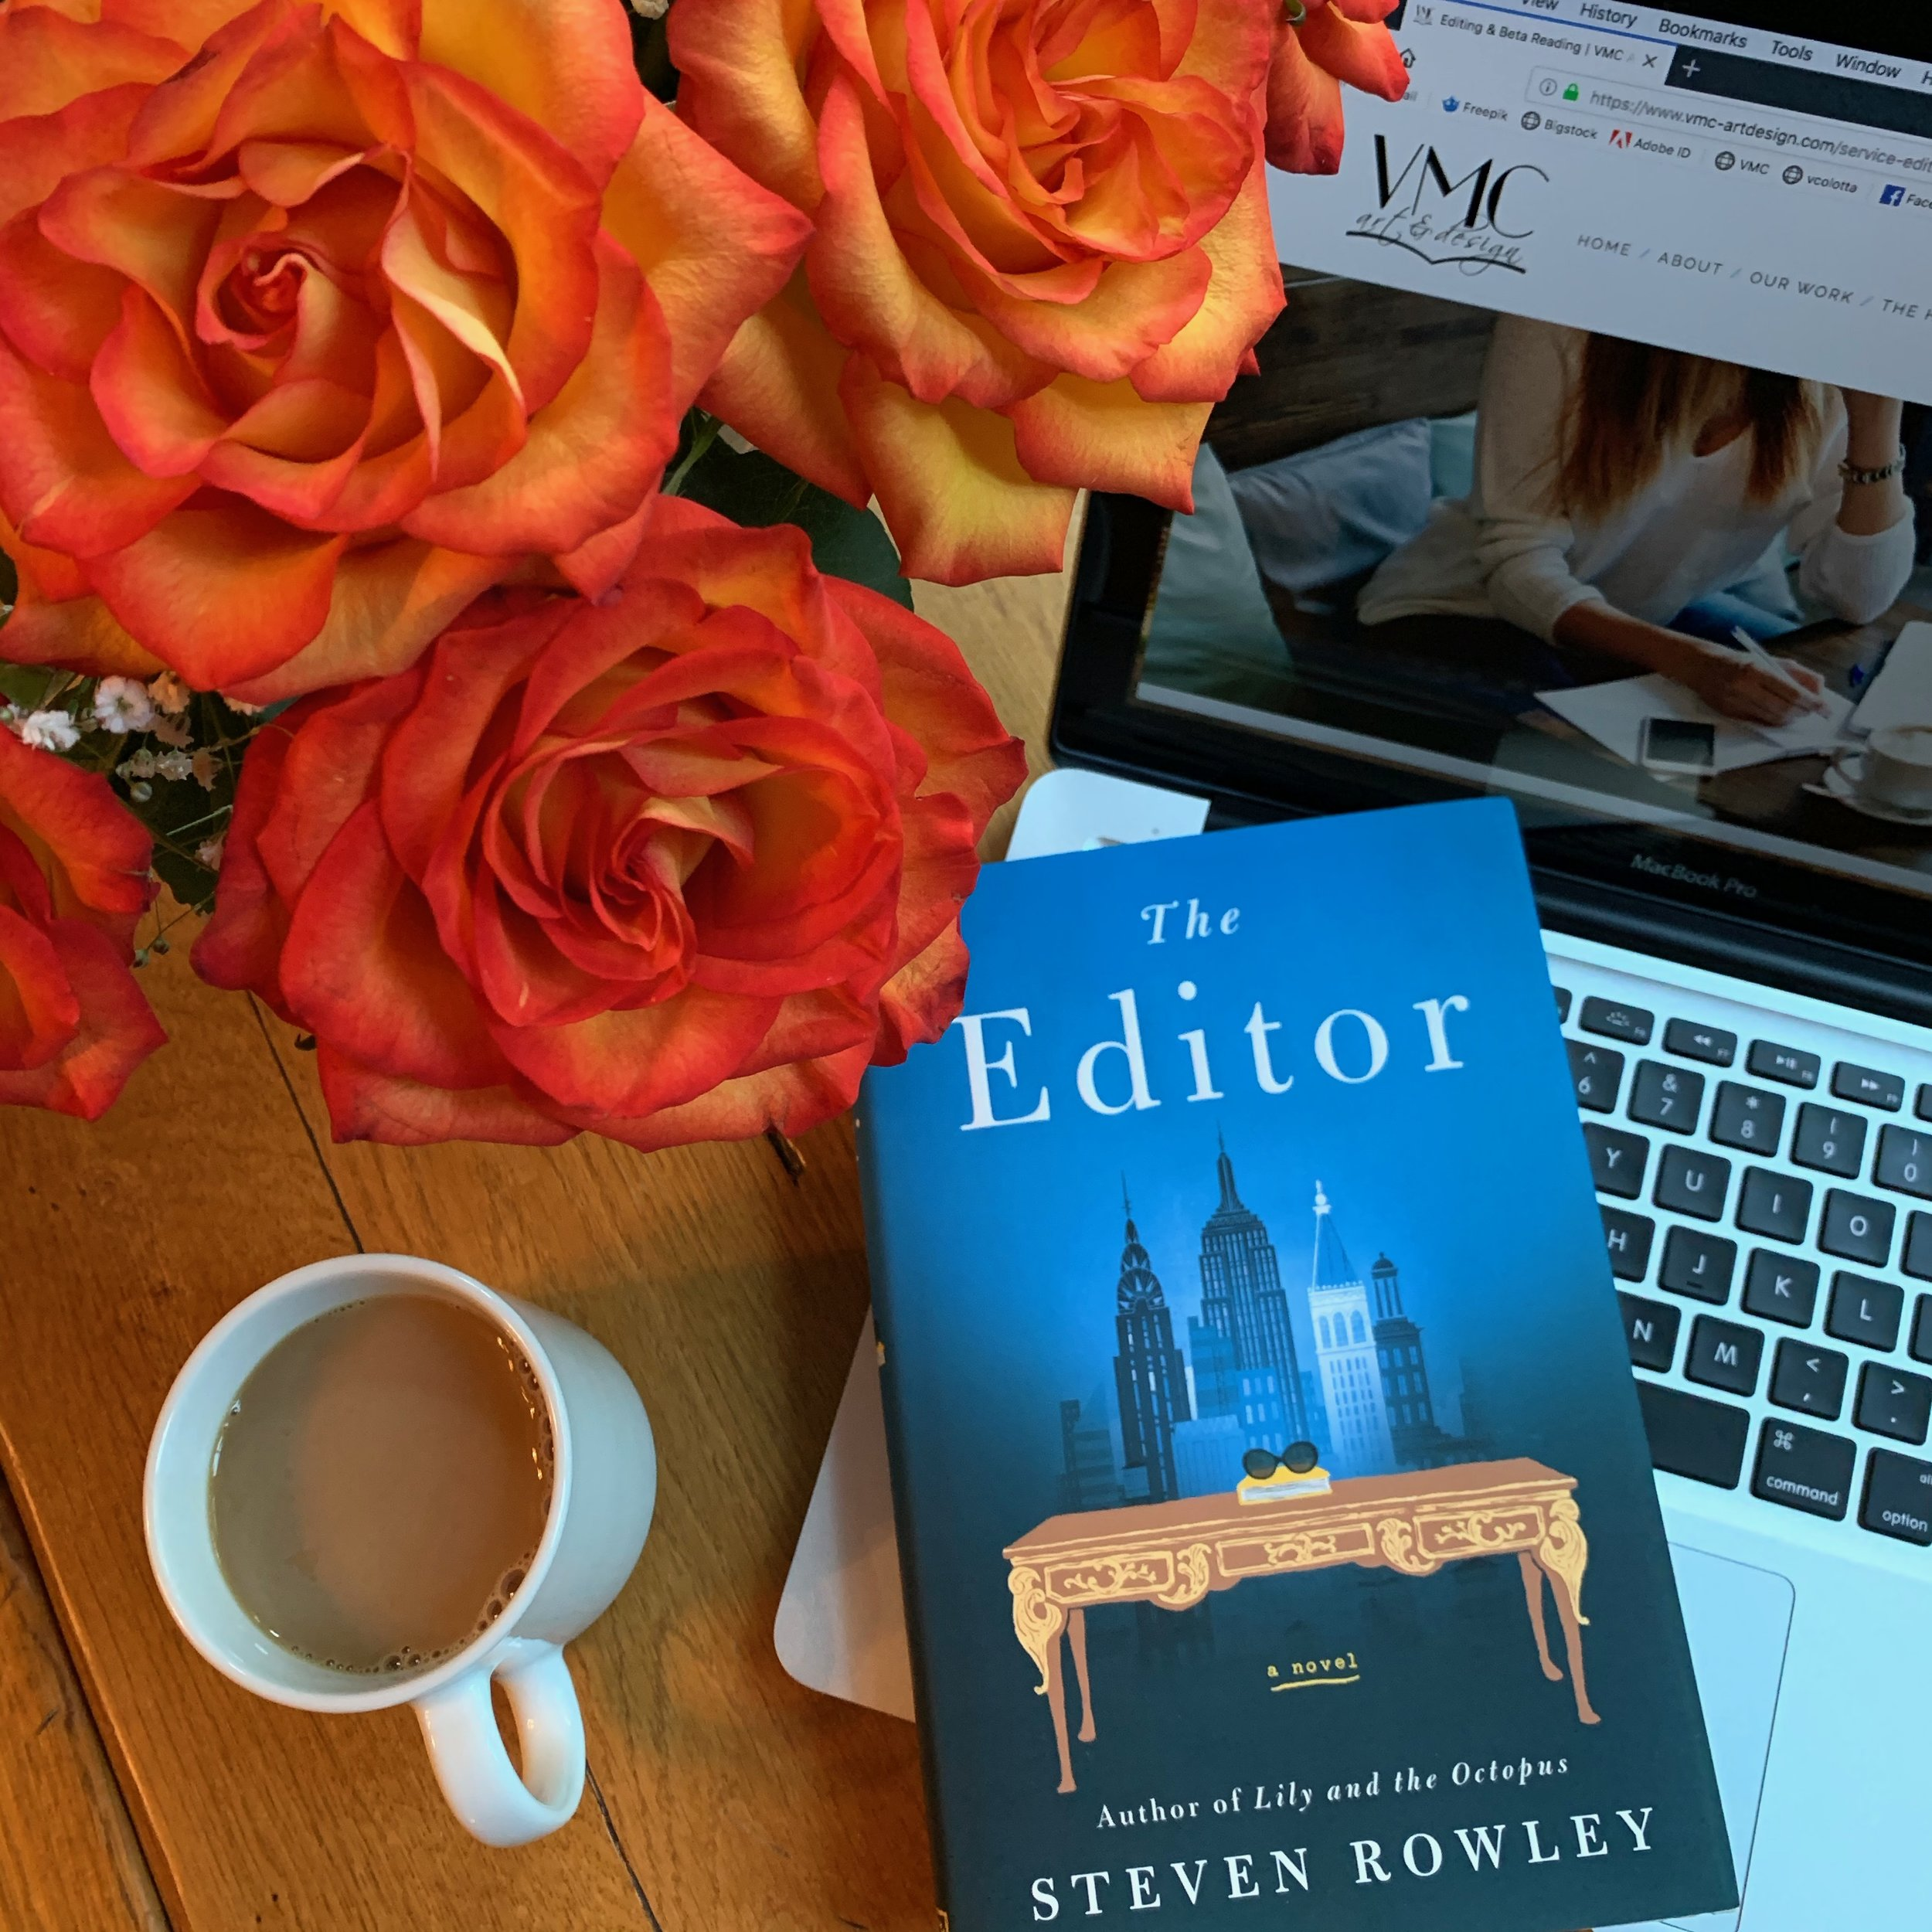 ** Book Review for THE EDITOR by Stephen Rowley **